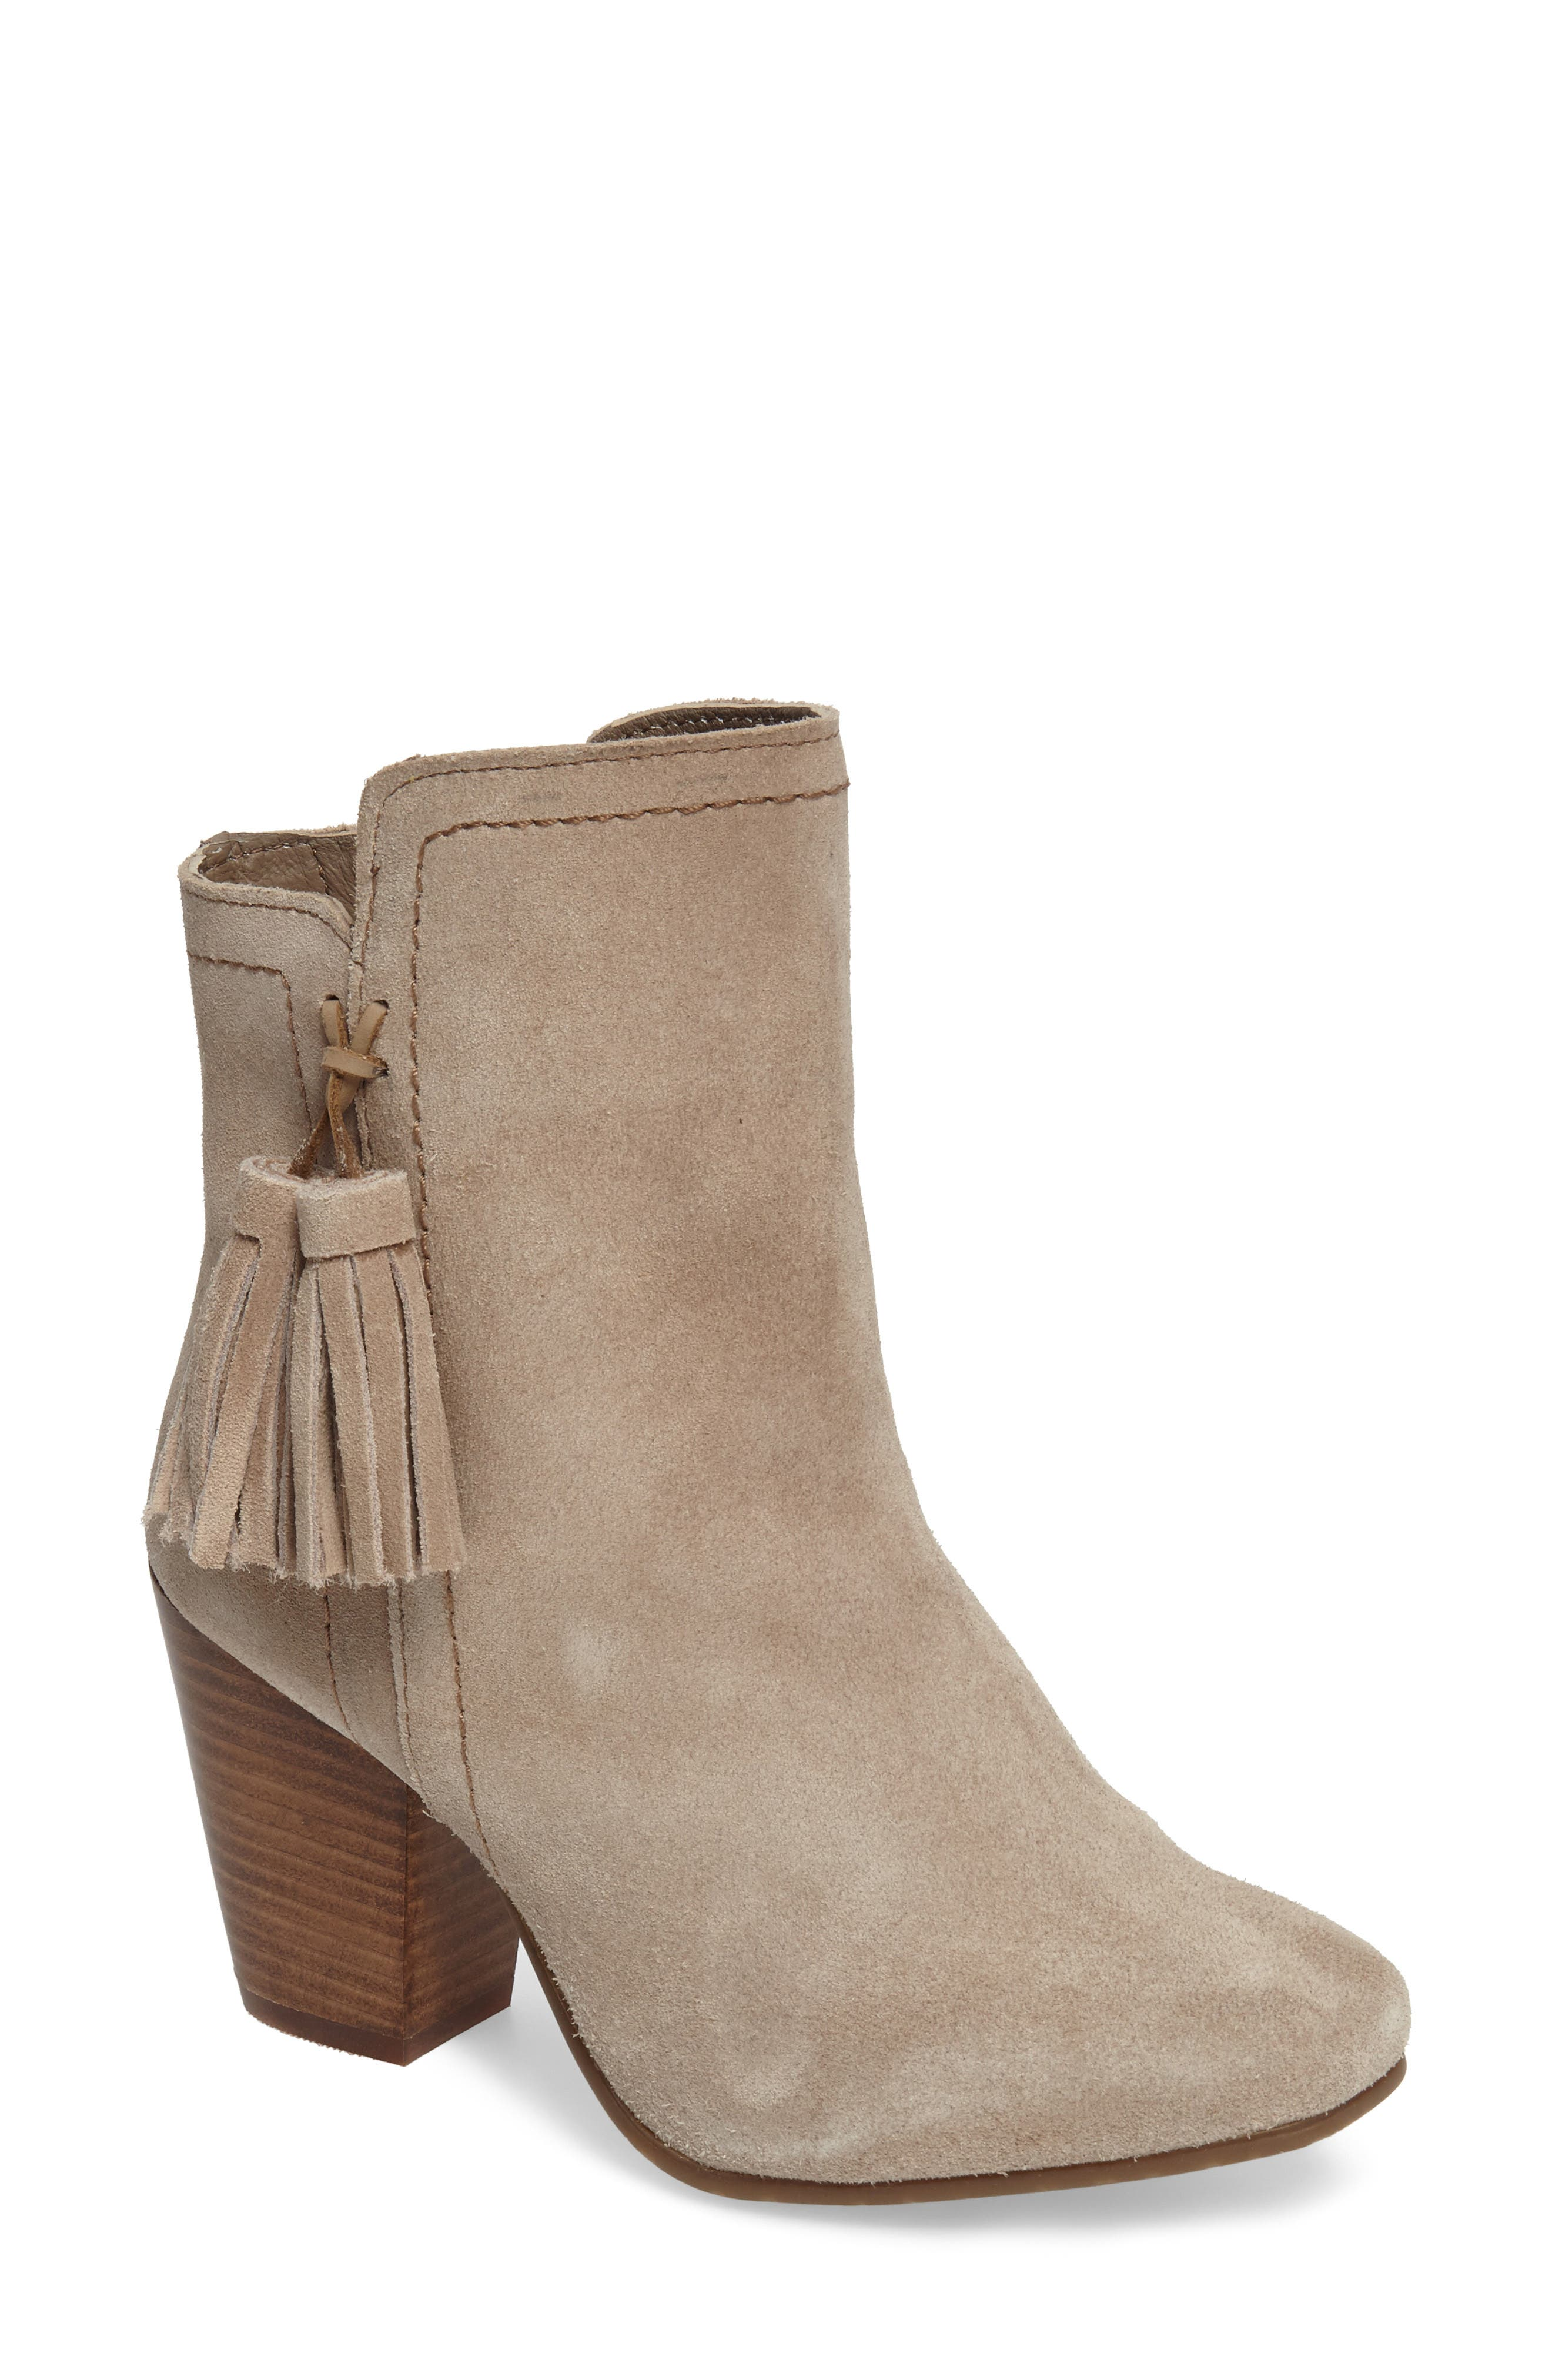 Daisee Billie Bootie,                             Main thumbnail 1, color,                             Taupe Suede